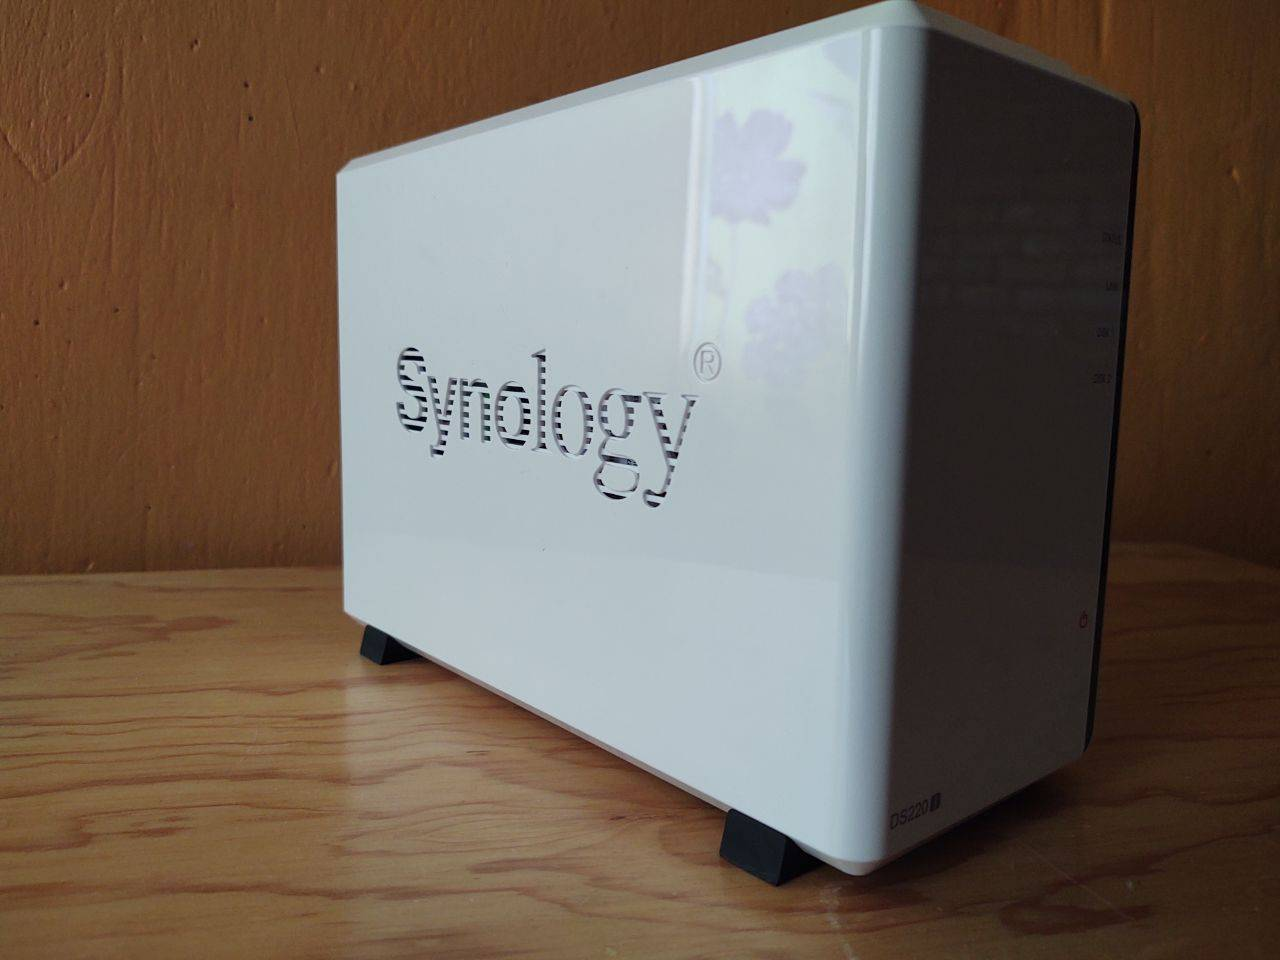 Synology DiskStation DS220j review